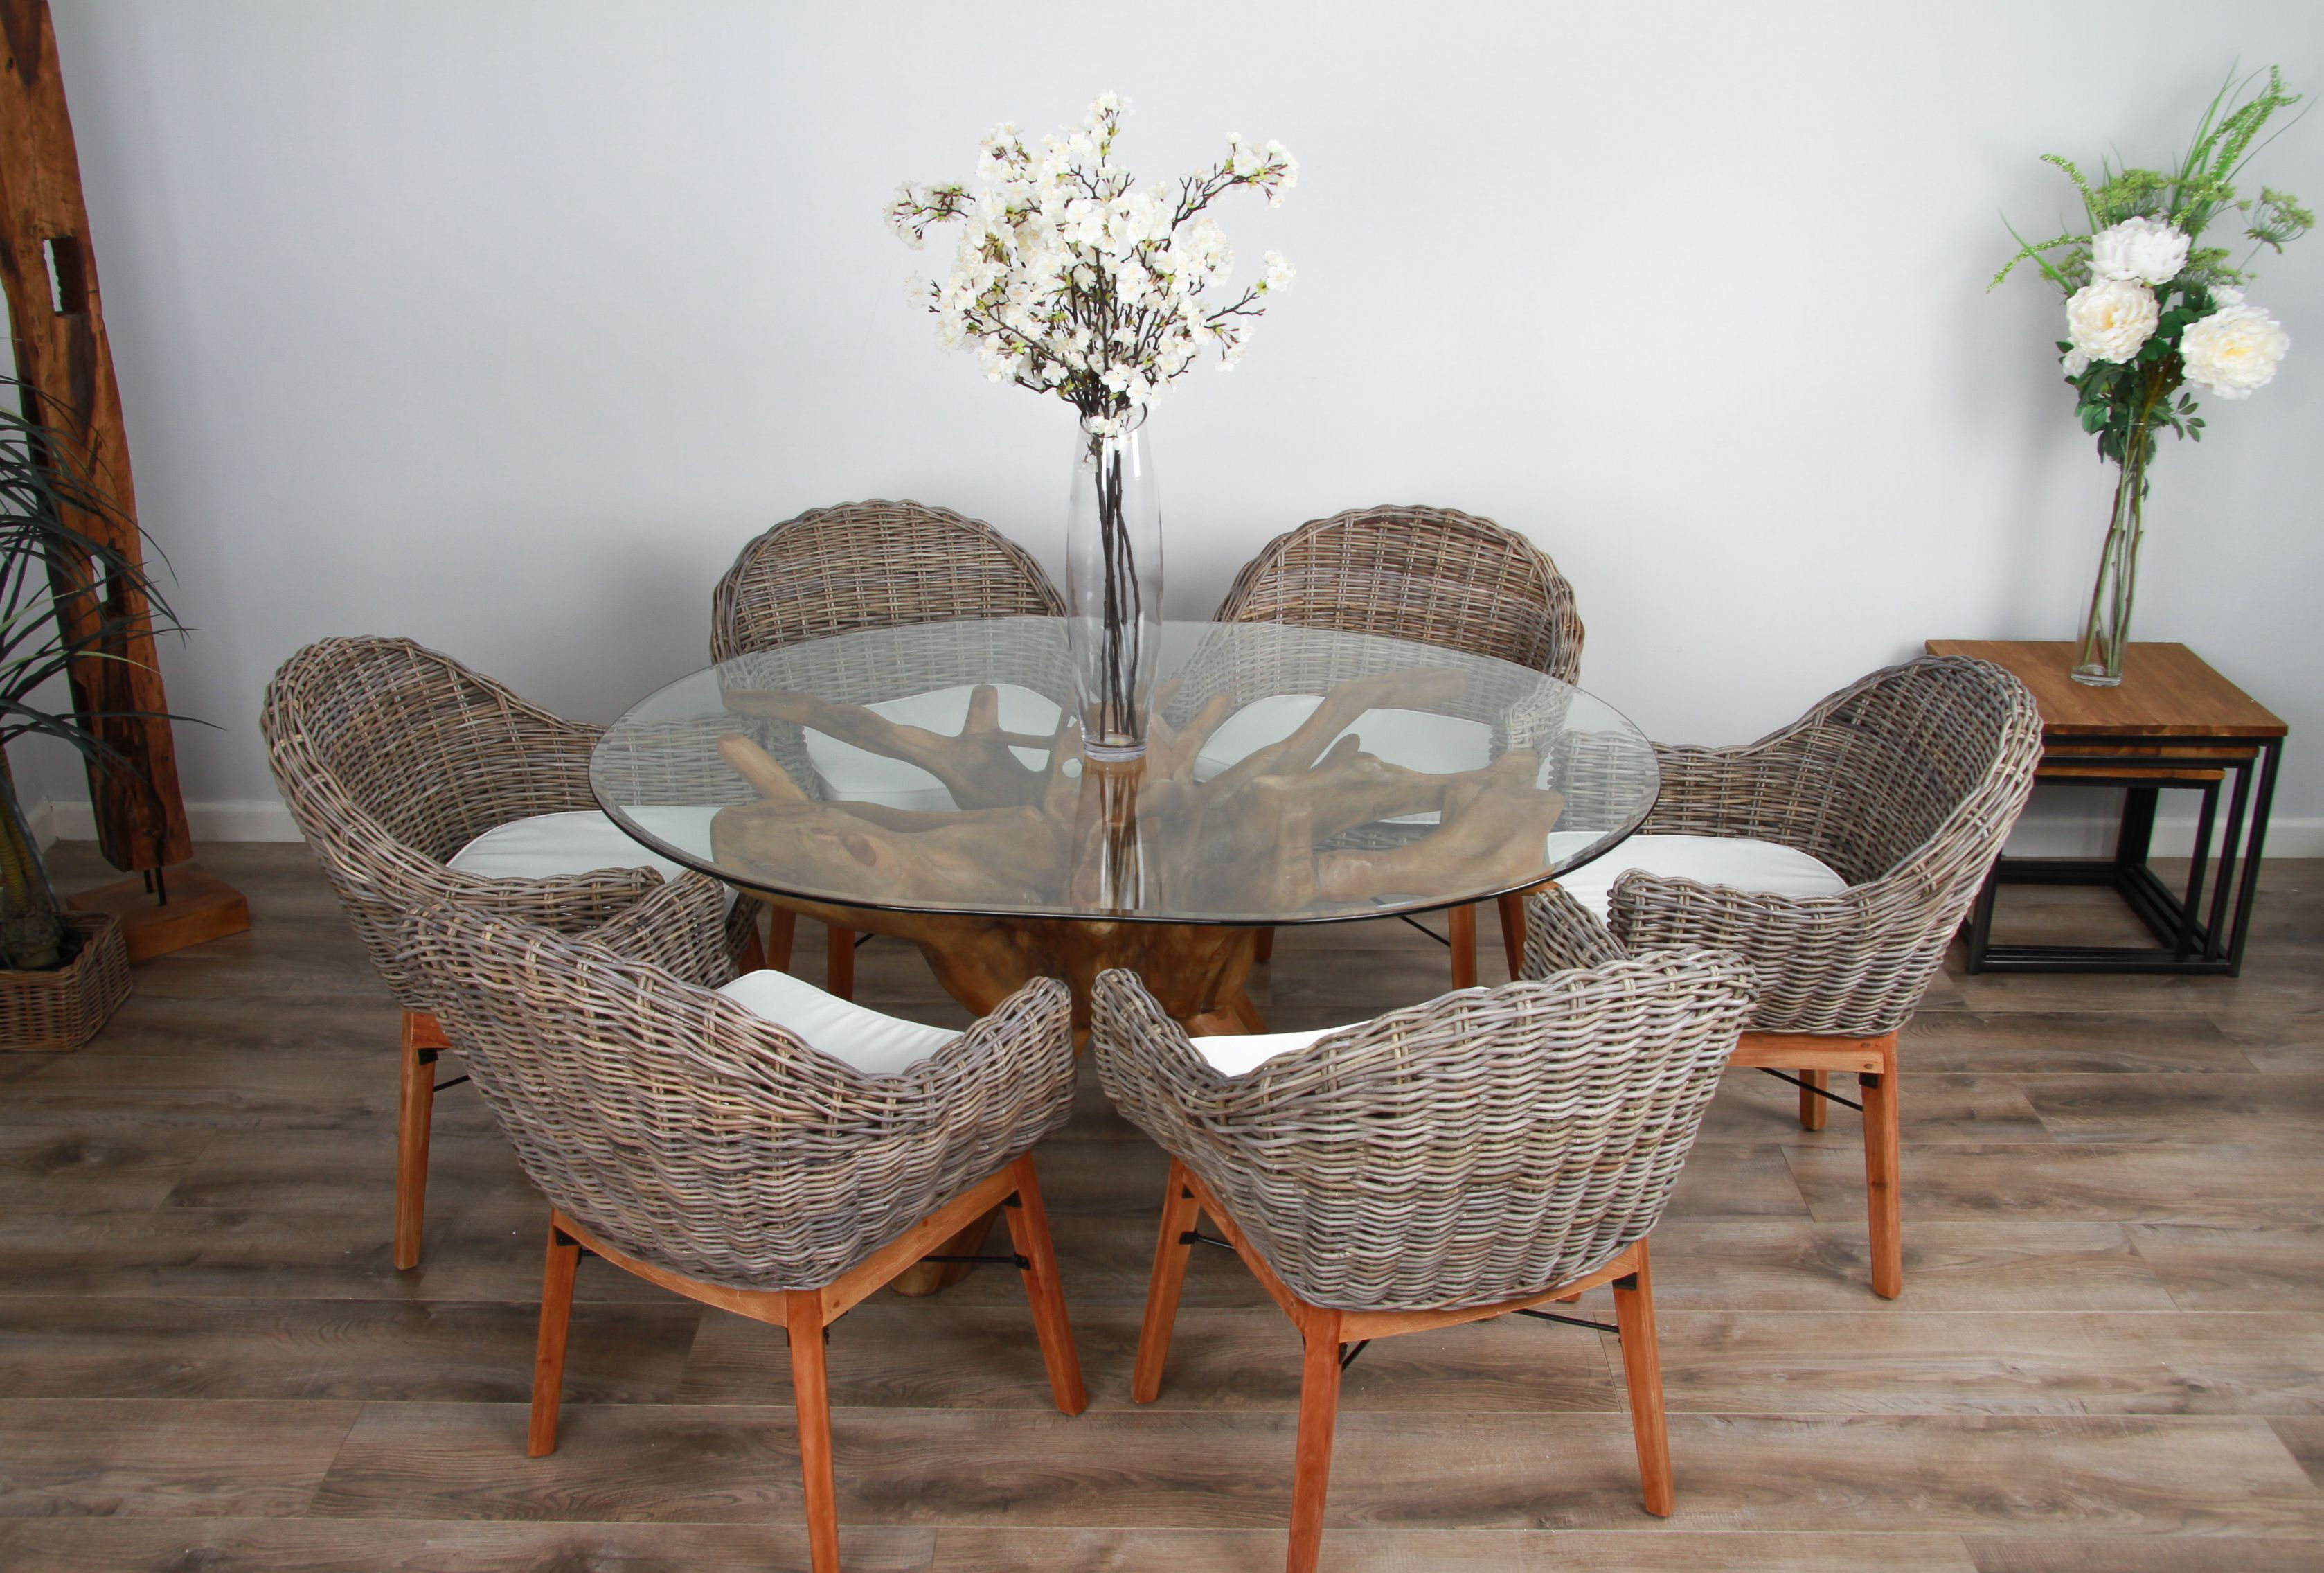 1 2m Reclaimed Teak Root Circular Dining Table With 4 Or 6 Scandi